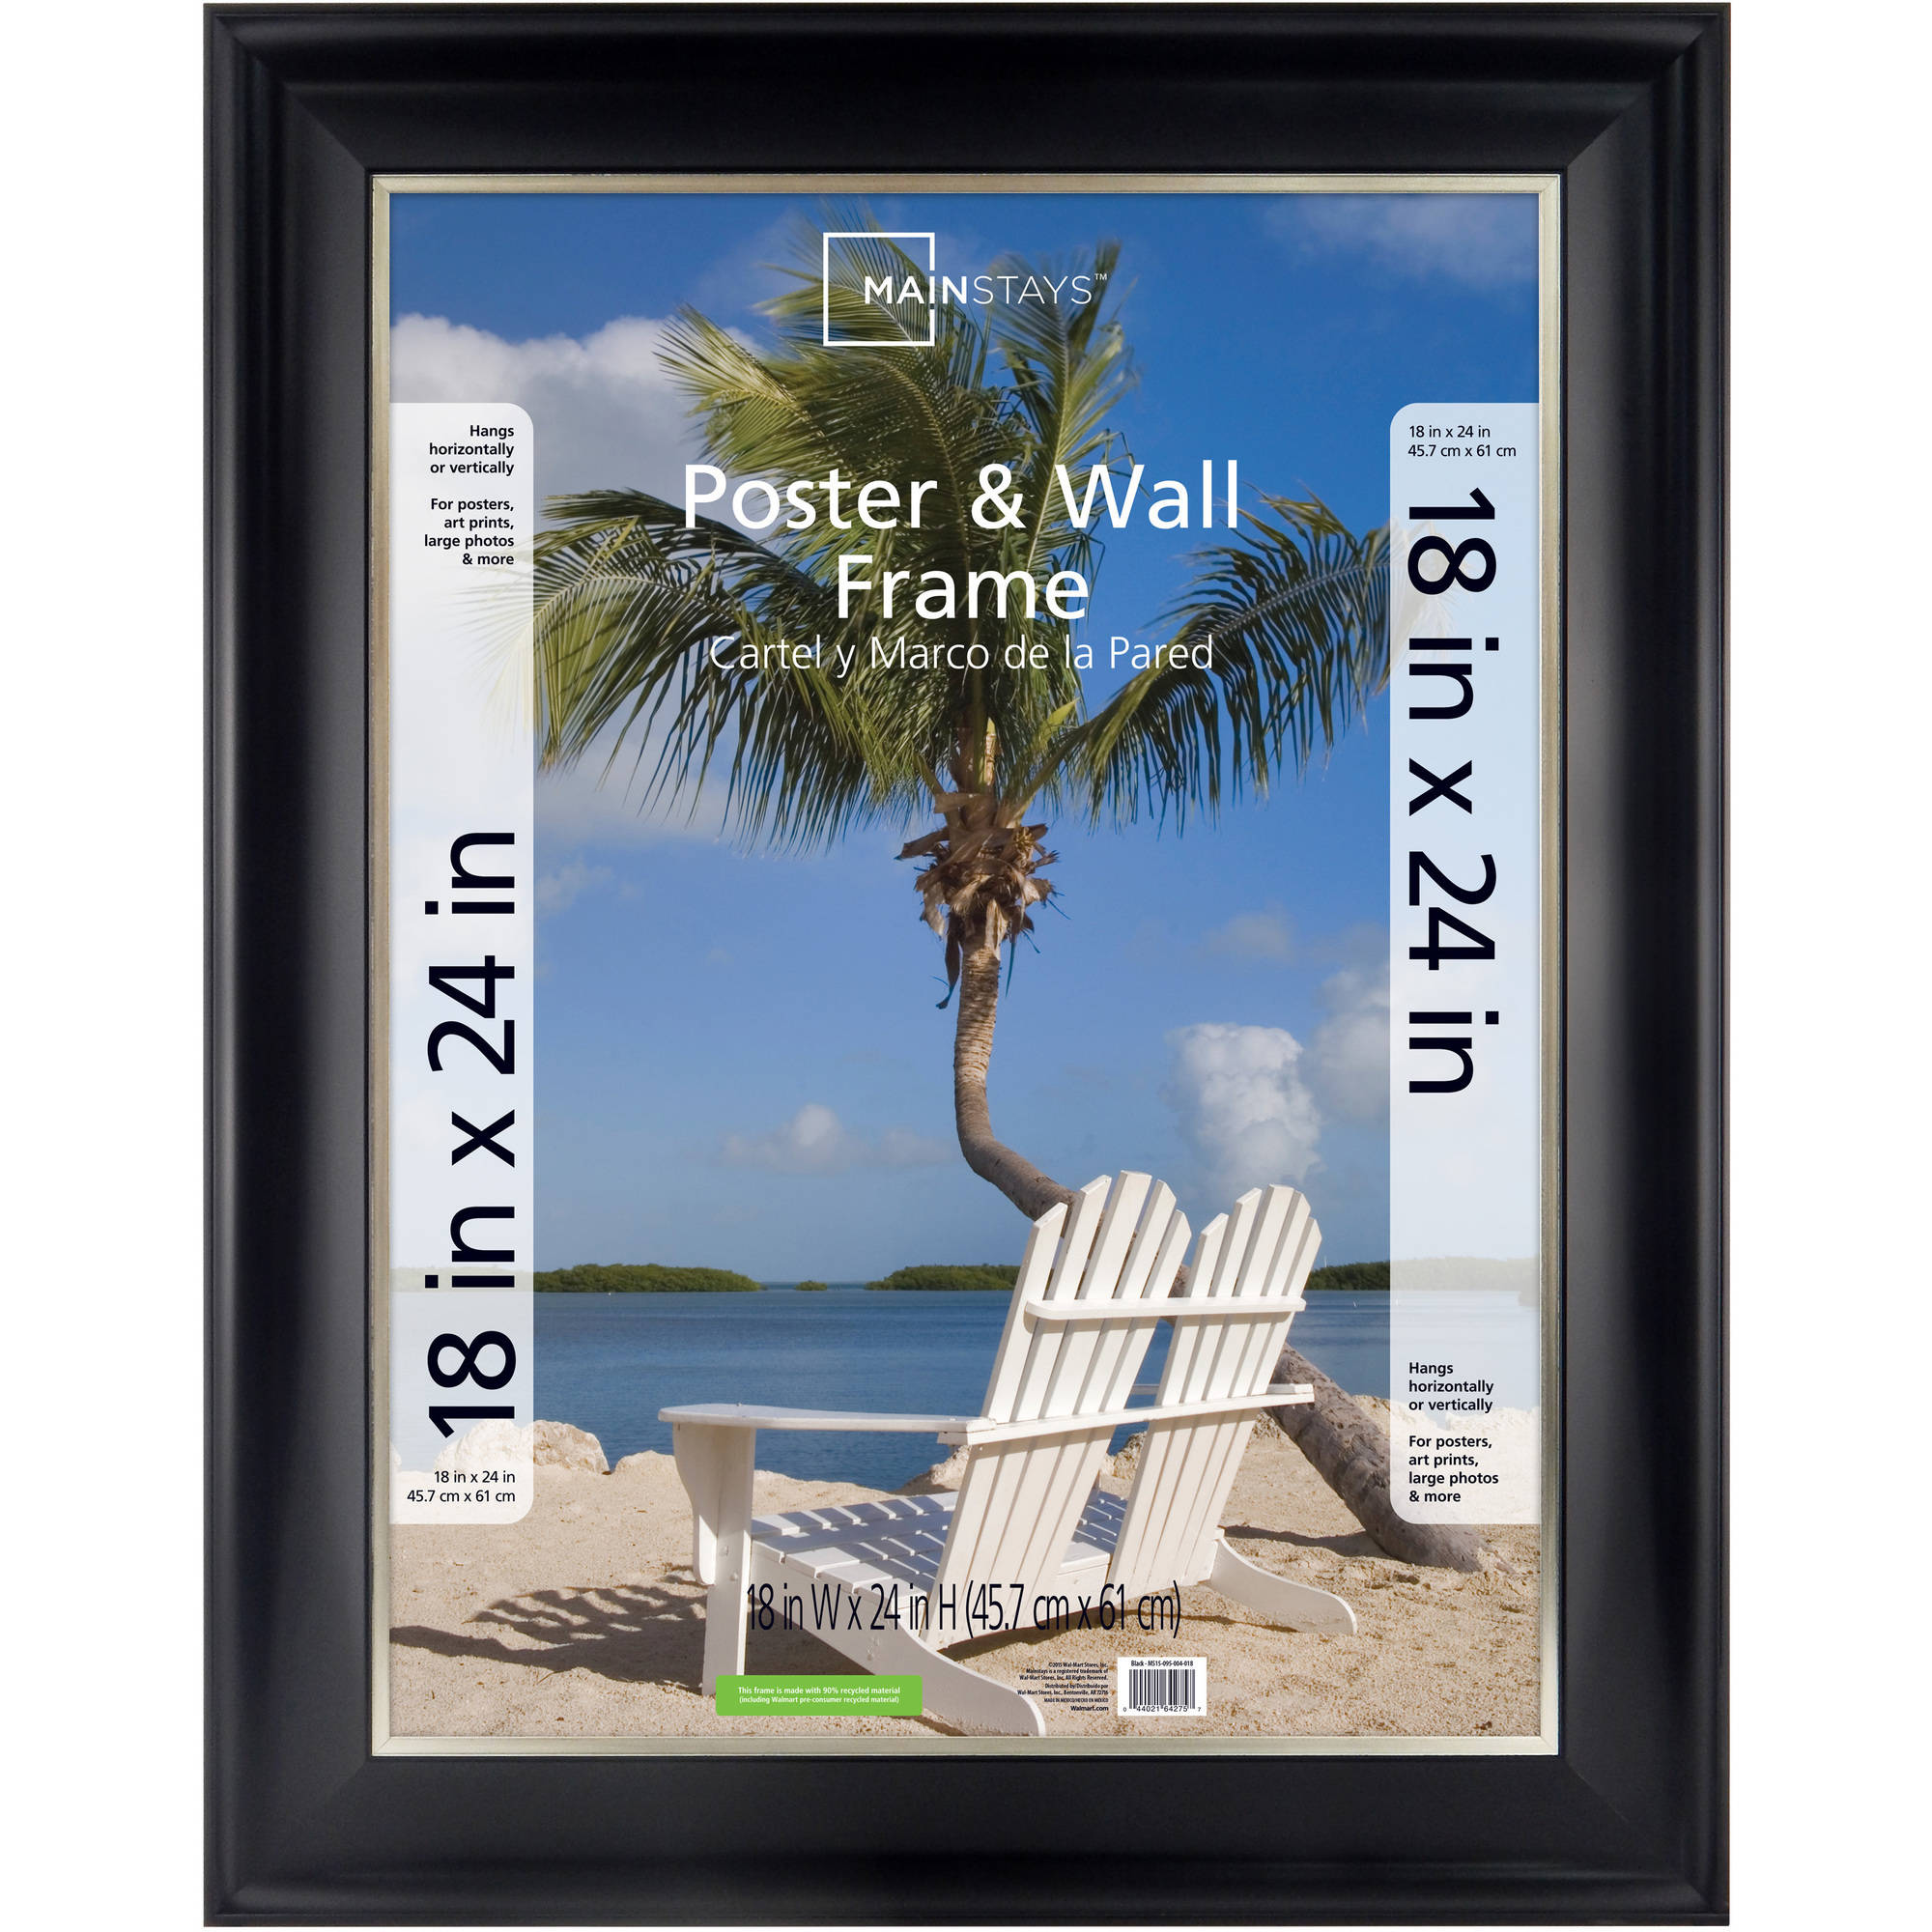 dax coloredge poster frame clear plastic window 18 x 24 black walmartcom